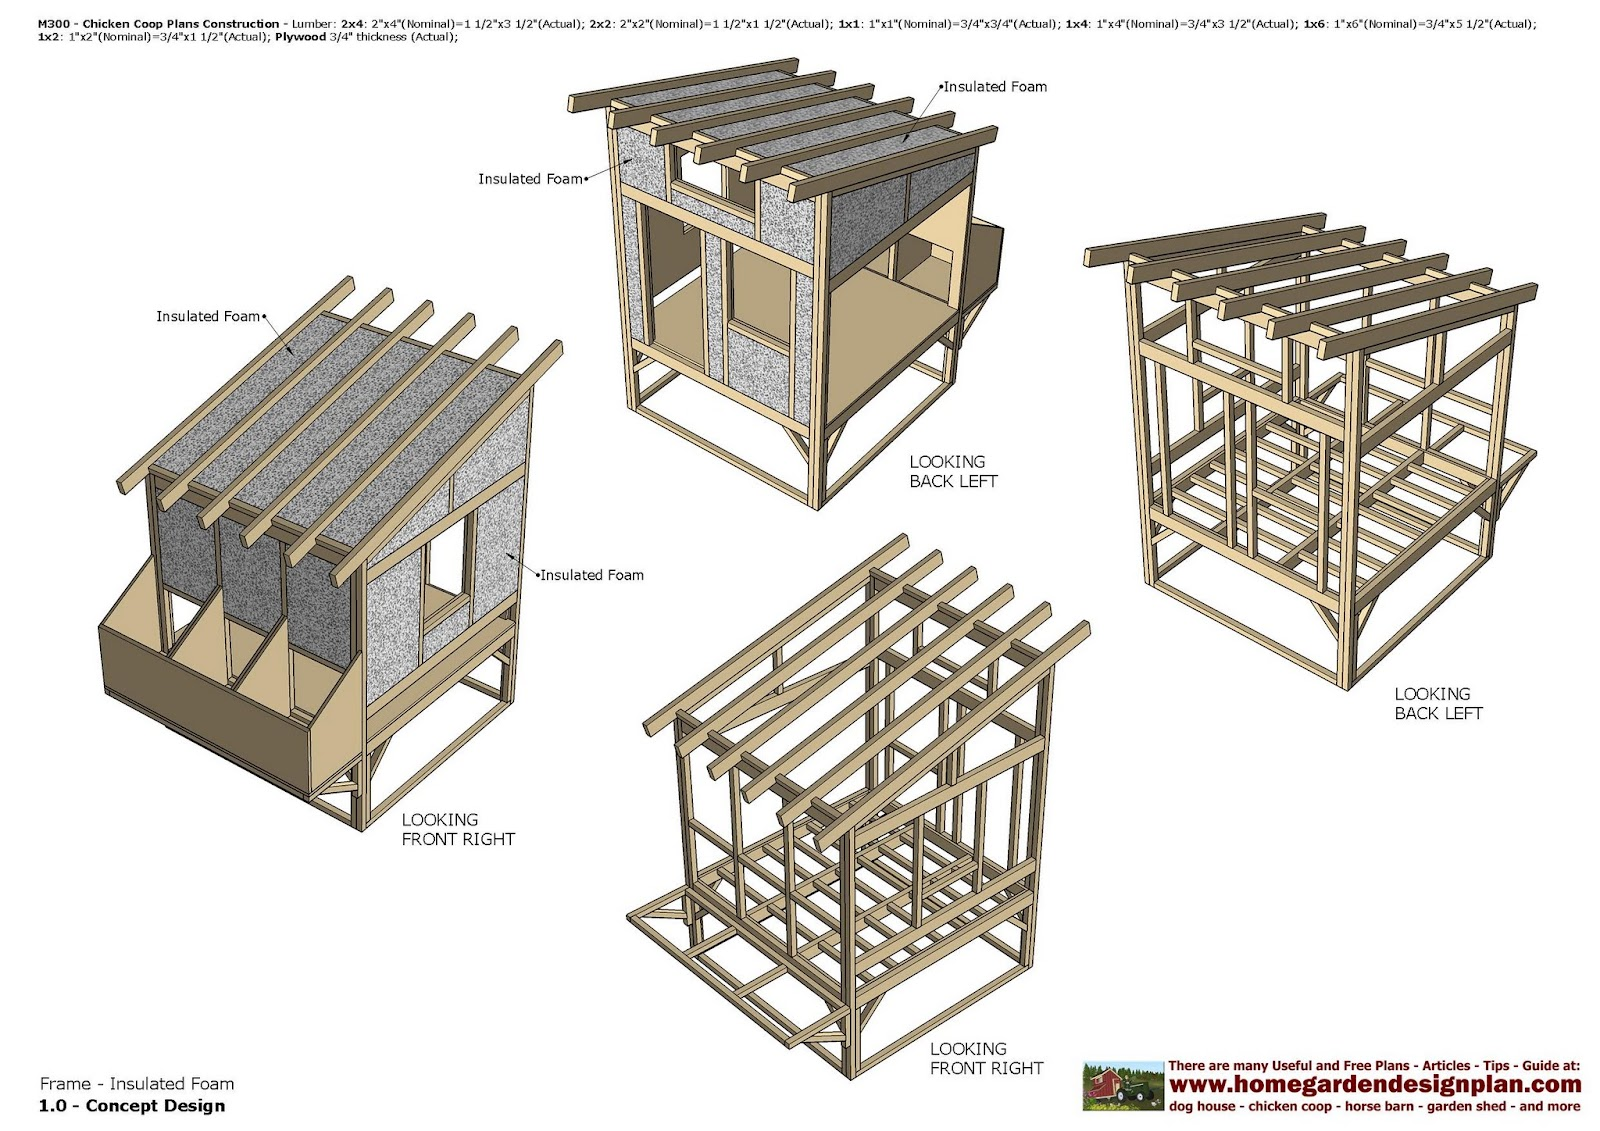 home garden plans: M300 _ Chicken Coop Plans Construction - Chicken Coop Design - How To Build A ...